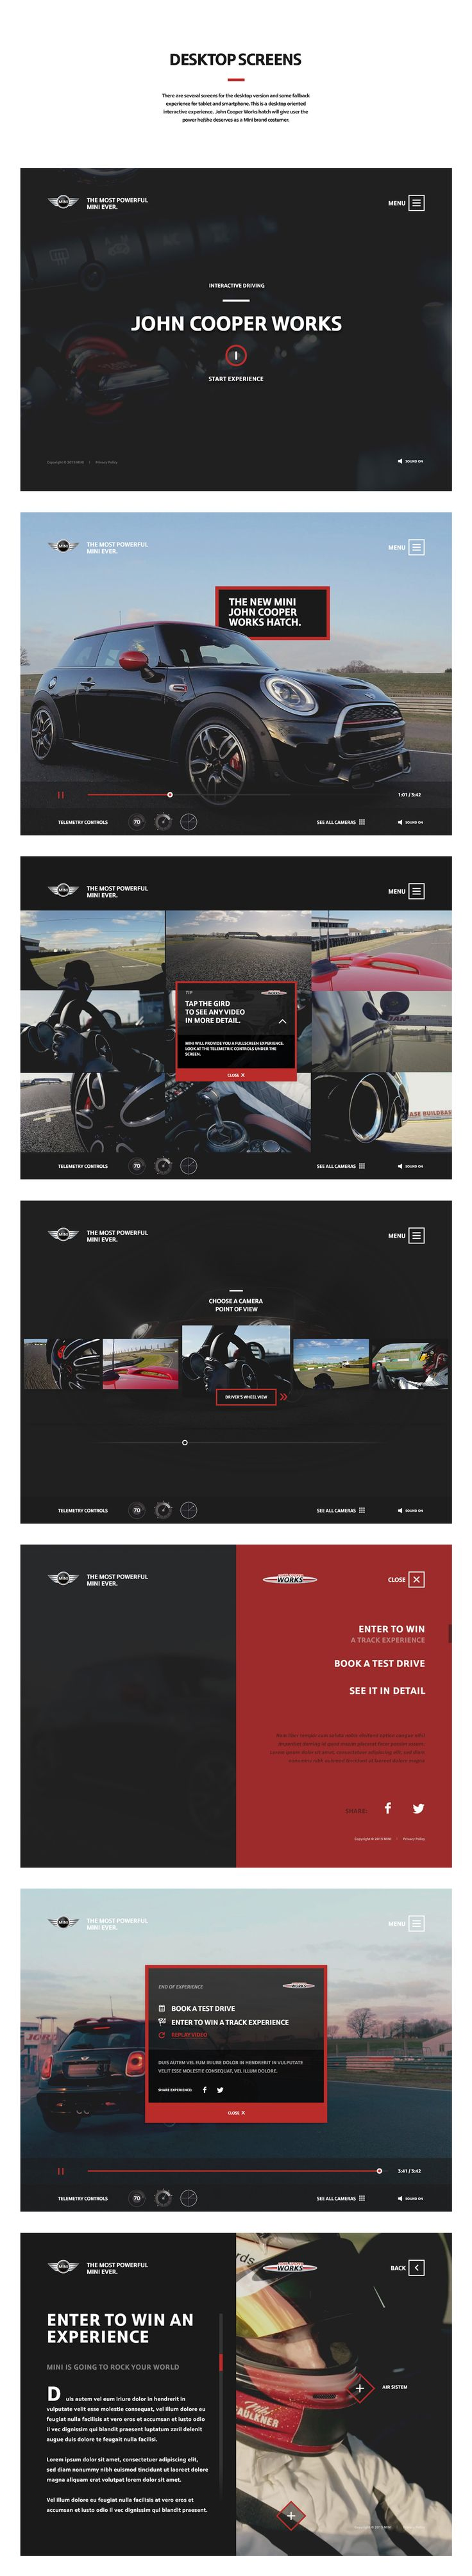 Mini Cooper Works - Digital Interactive Experience on Behance